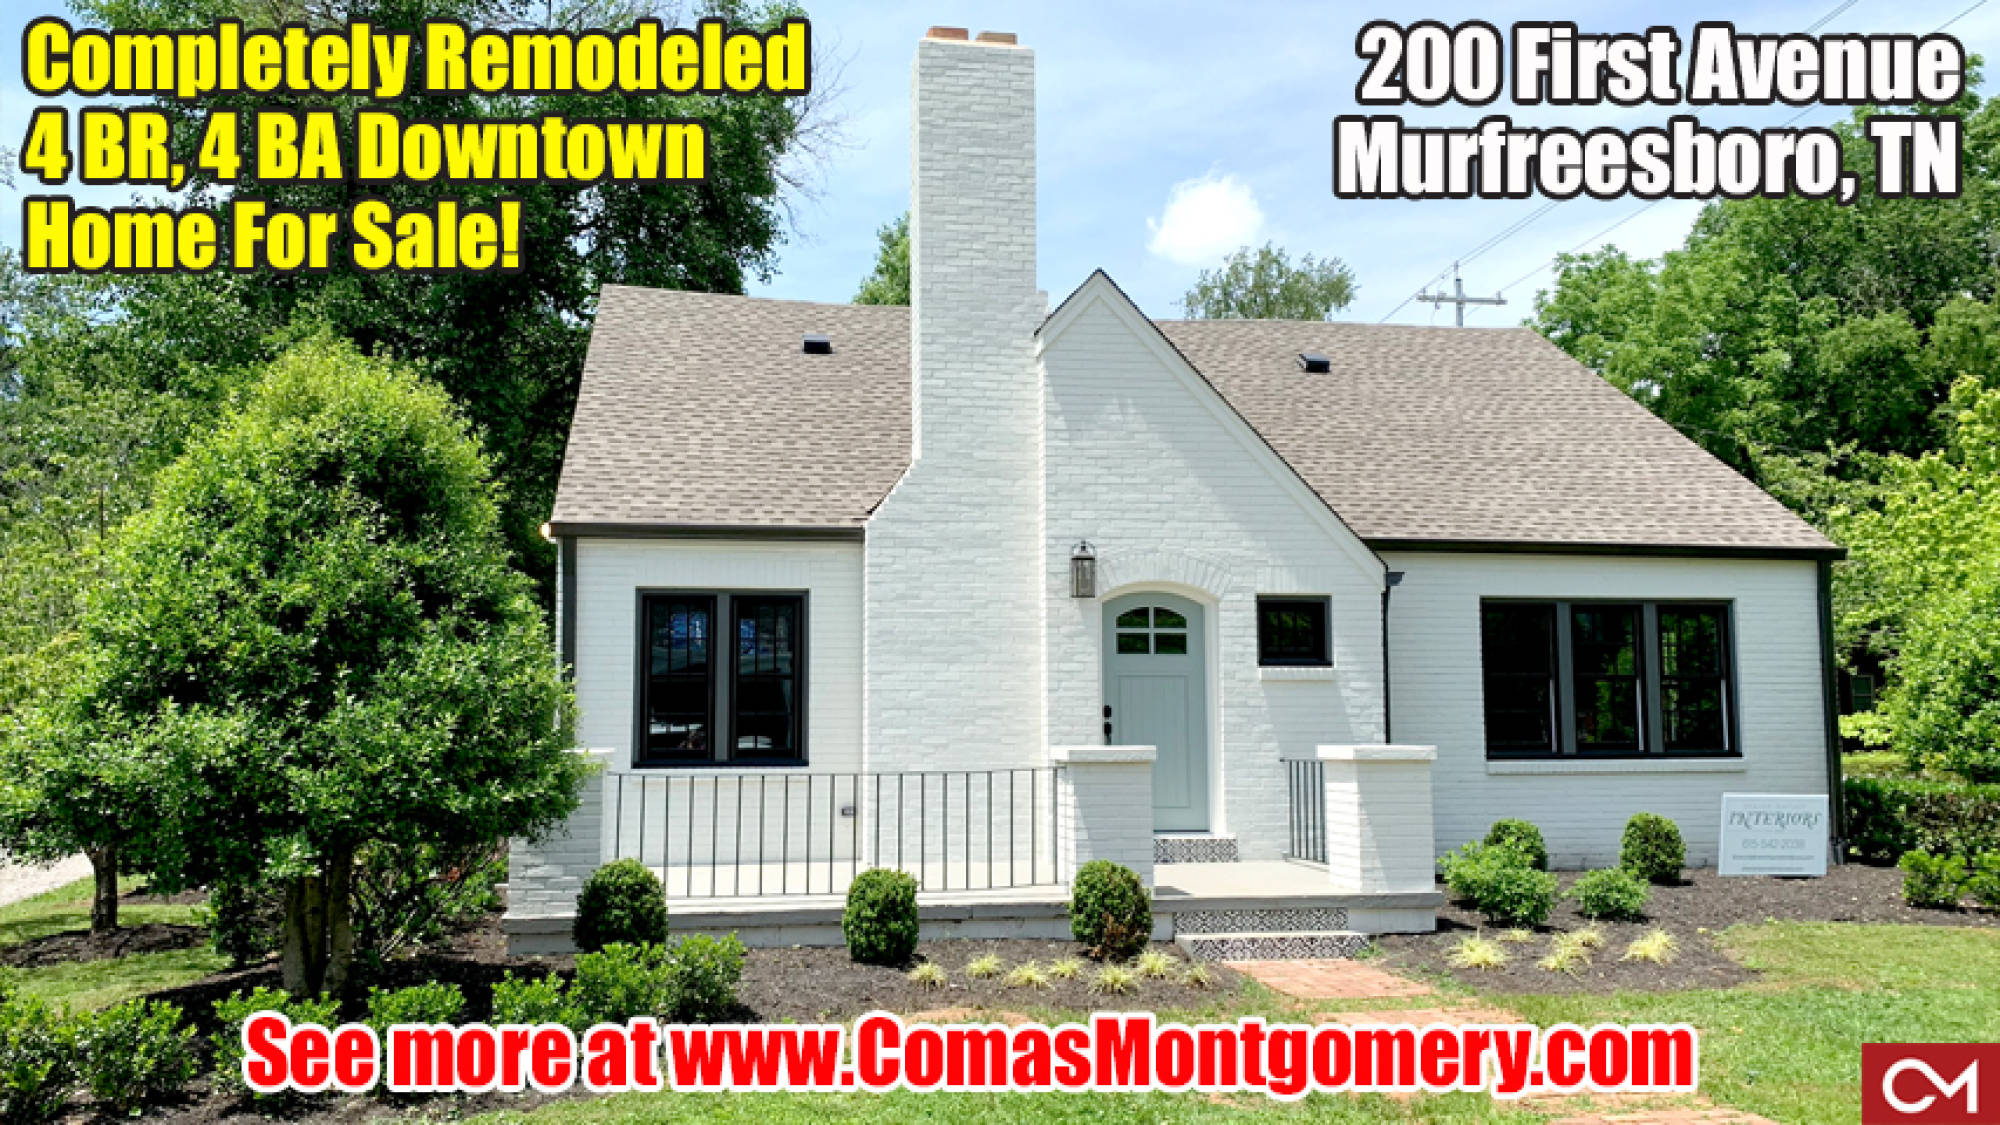 Real Estate, Downtown, Murfreesboro, Home, House, Renovated, Remodeled, First, 1st, Avenue, MTSU, Square, Rutherford, Comas, Montgomery